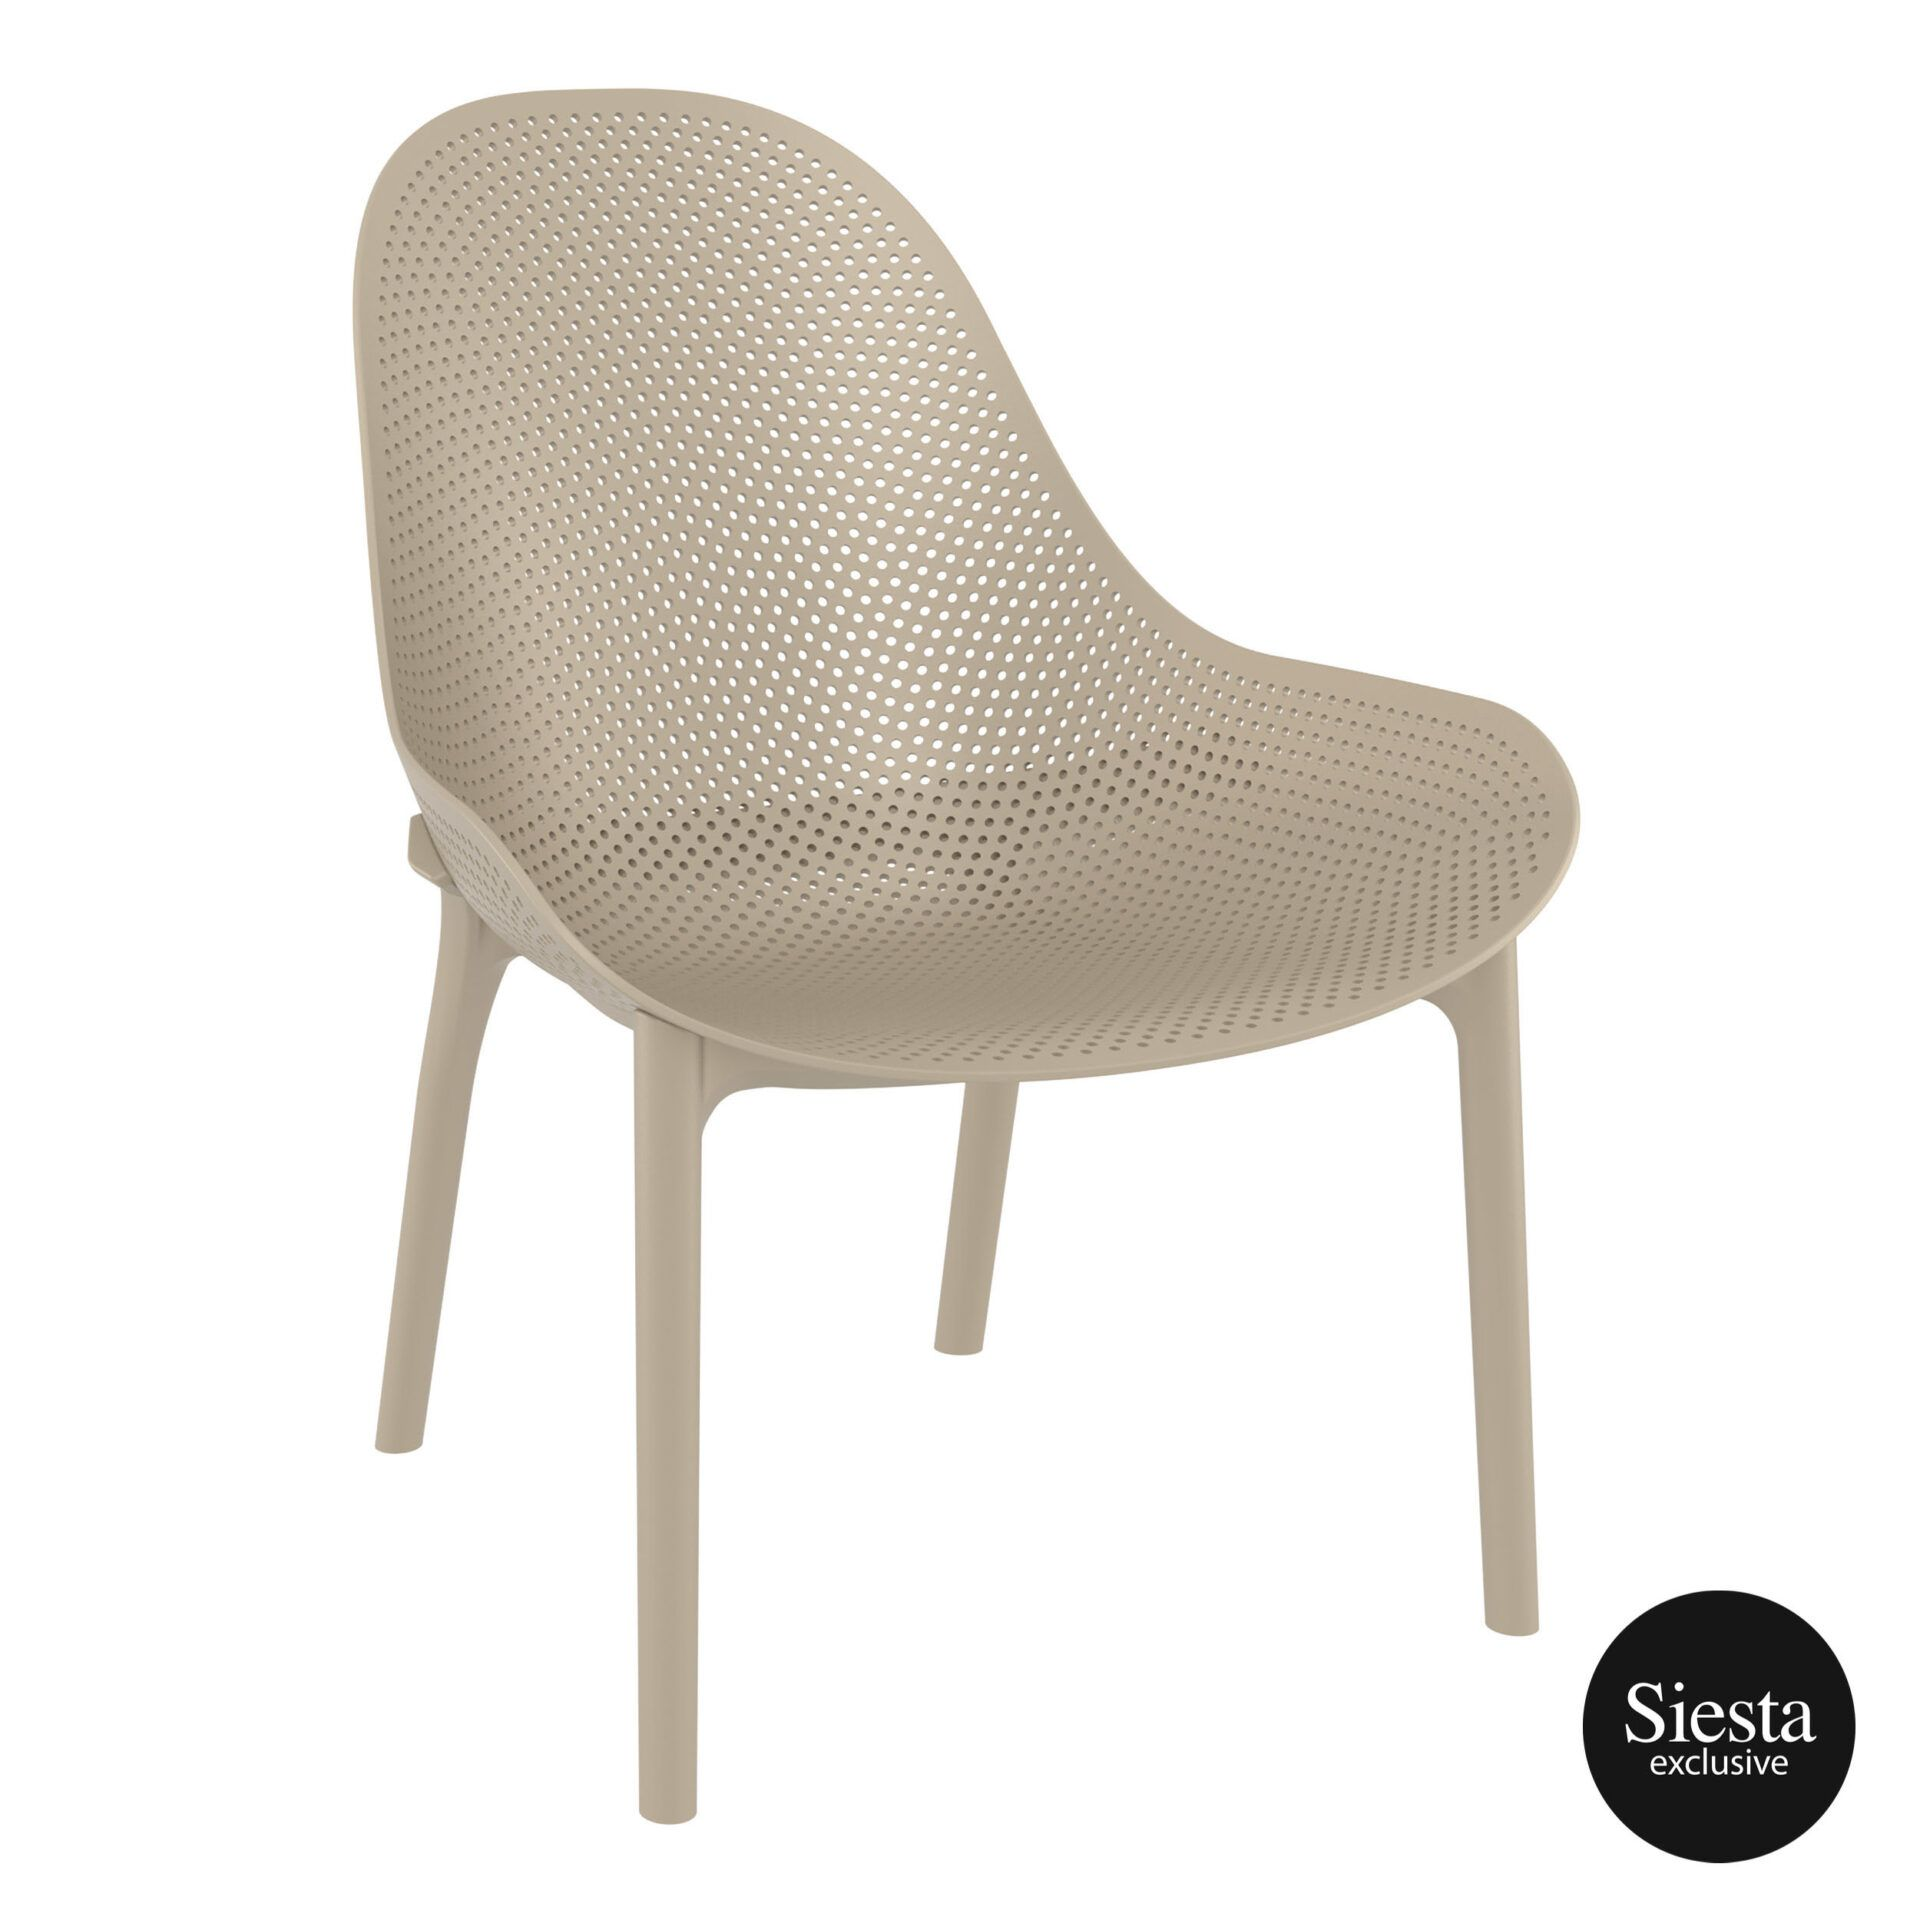 Outdoor Seating Polypropylene Sky Lounge taupe front side